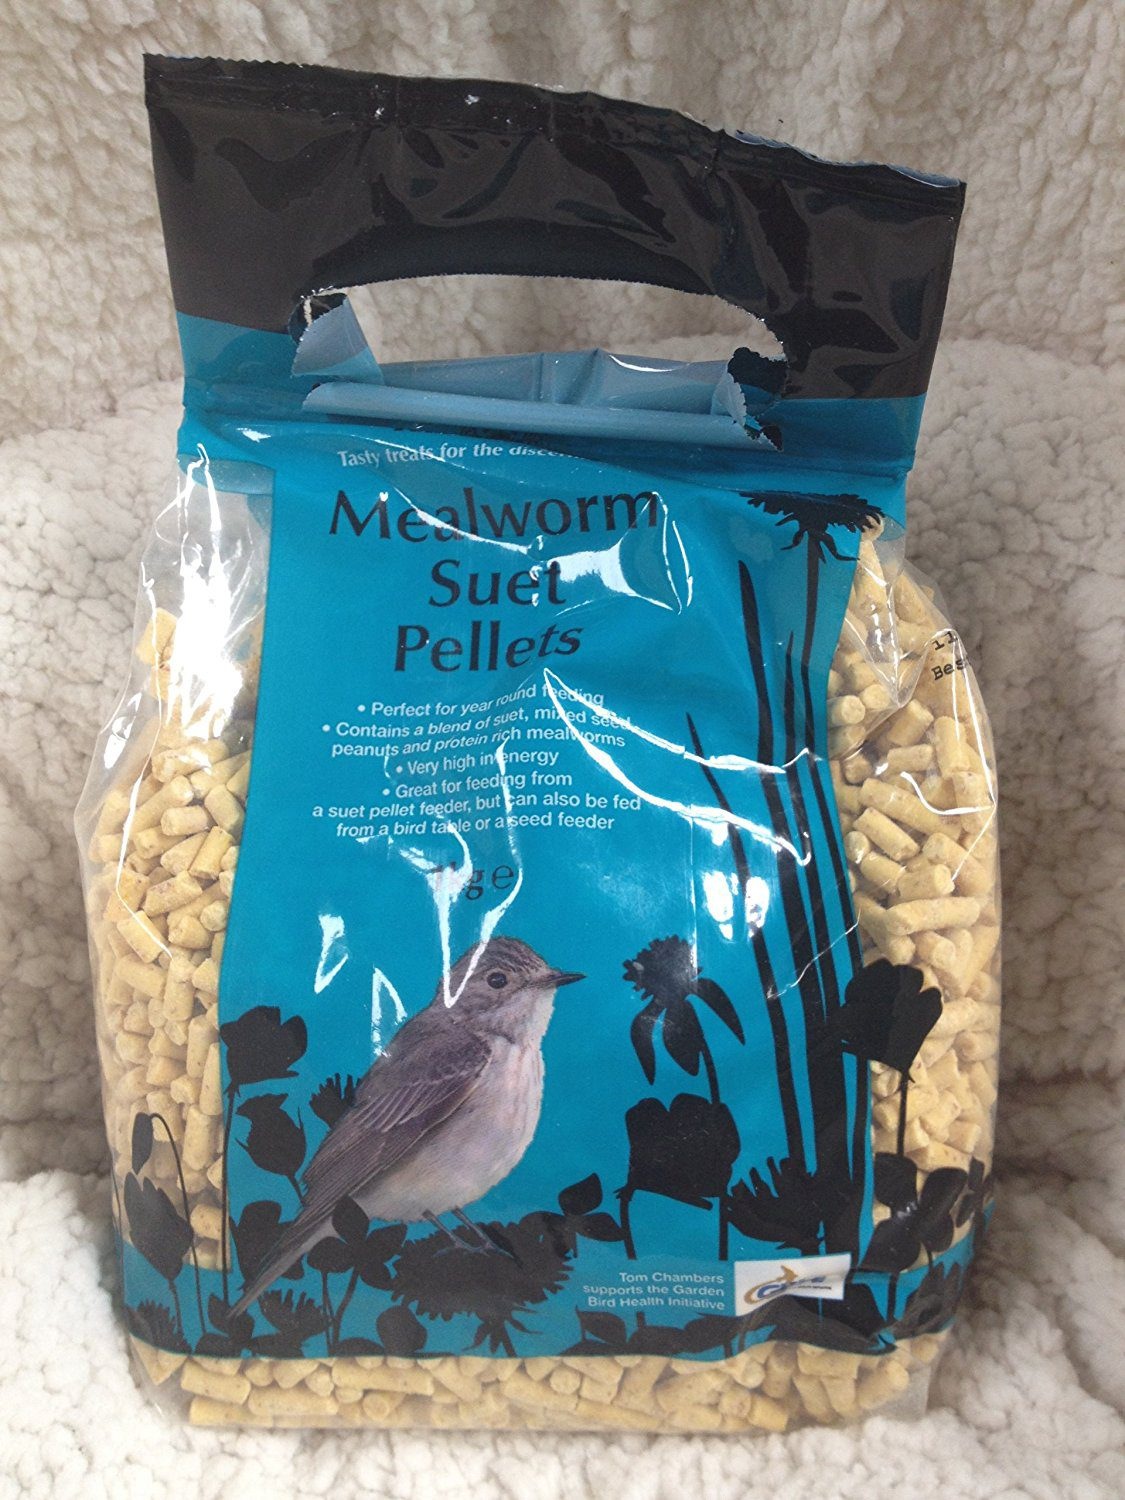 Tom Chambers Mealworm Suet Pellets